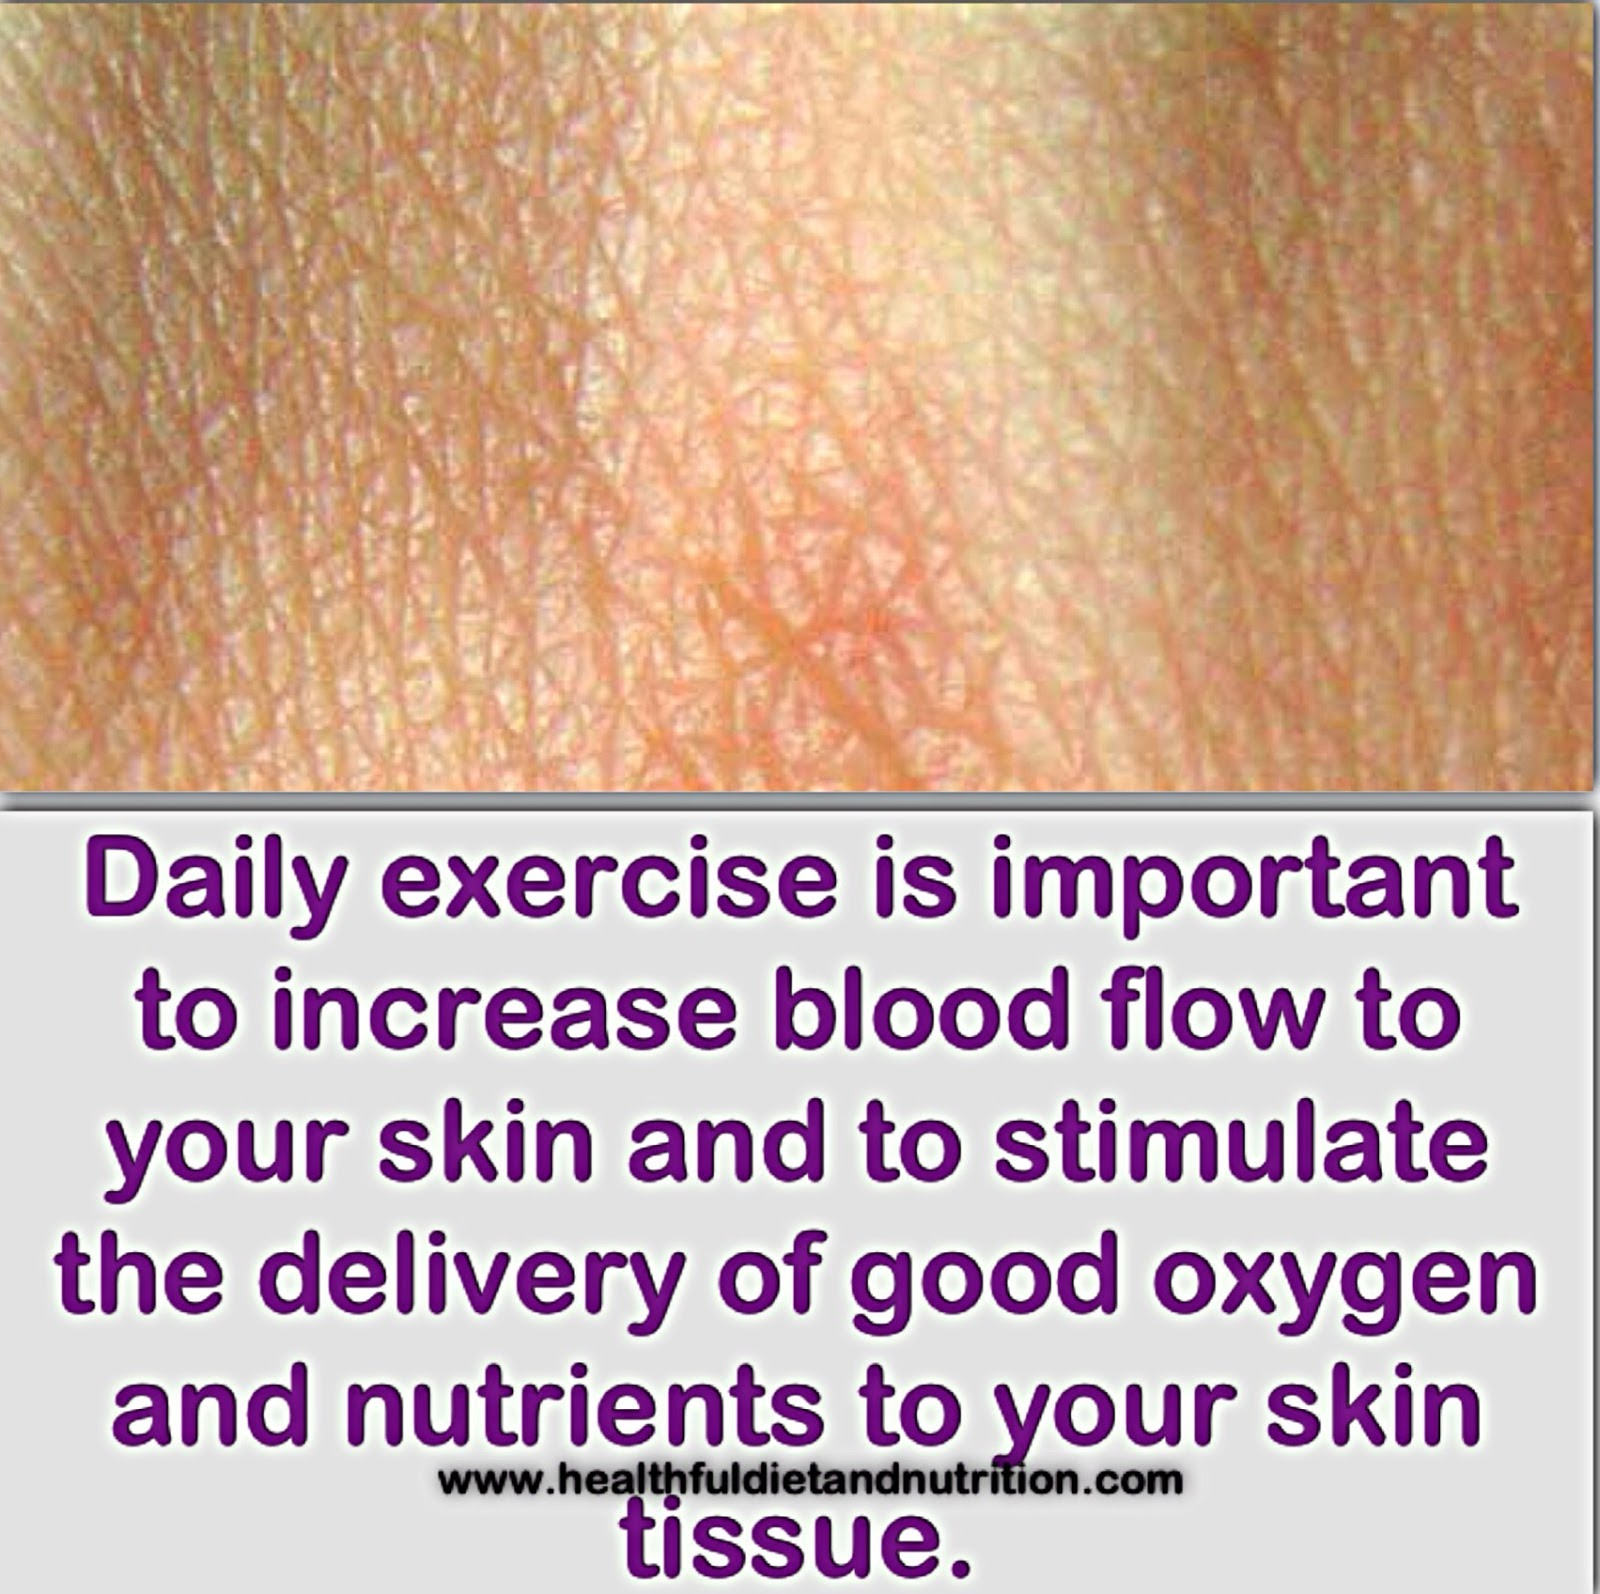 Daily Exercise and Skin Health